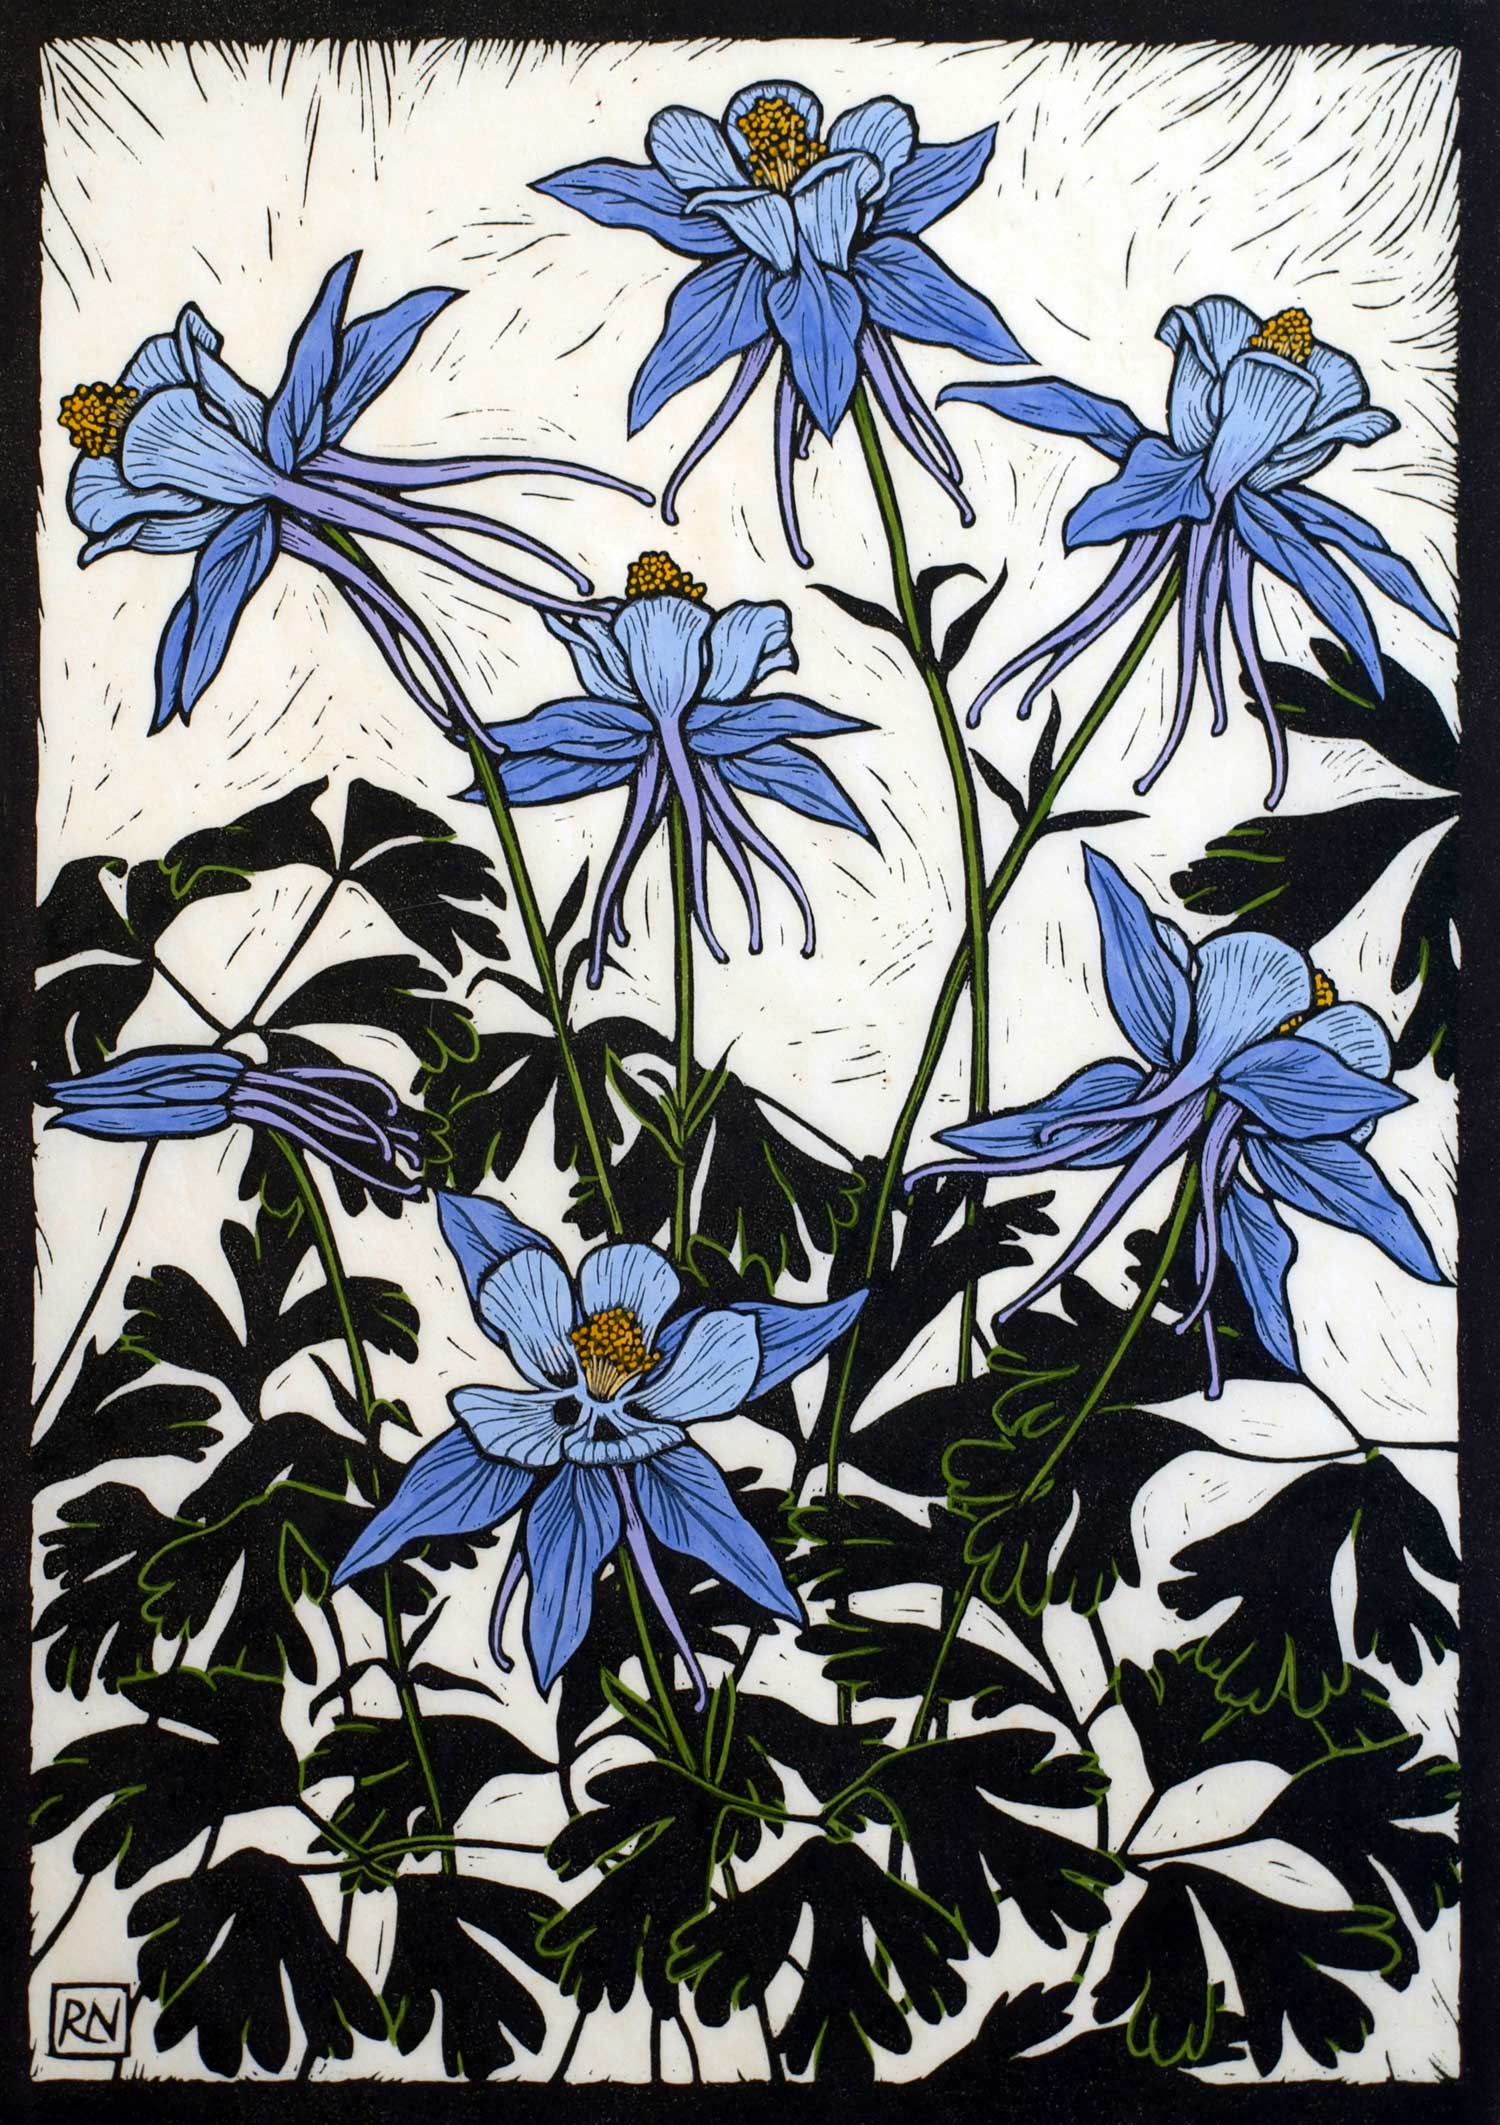 COLUMBINES  49 X 35 CM, EDITION OF 50  HAND-COLOURED LINOCUT ON HANDMADE JAPANESE PAPER  $1,100